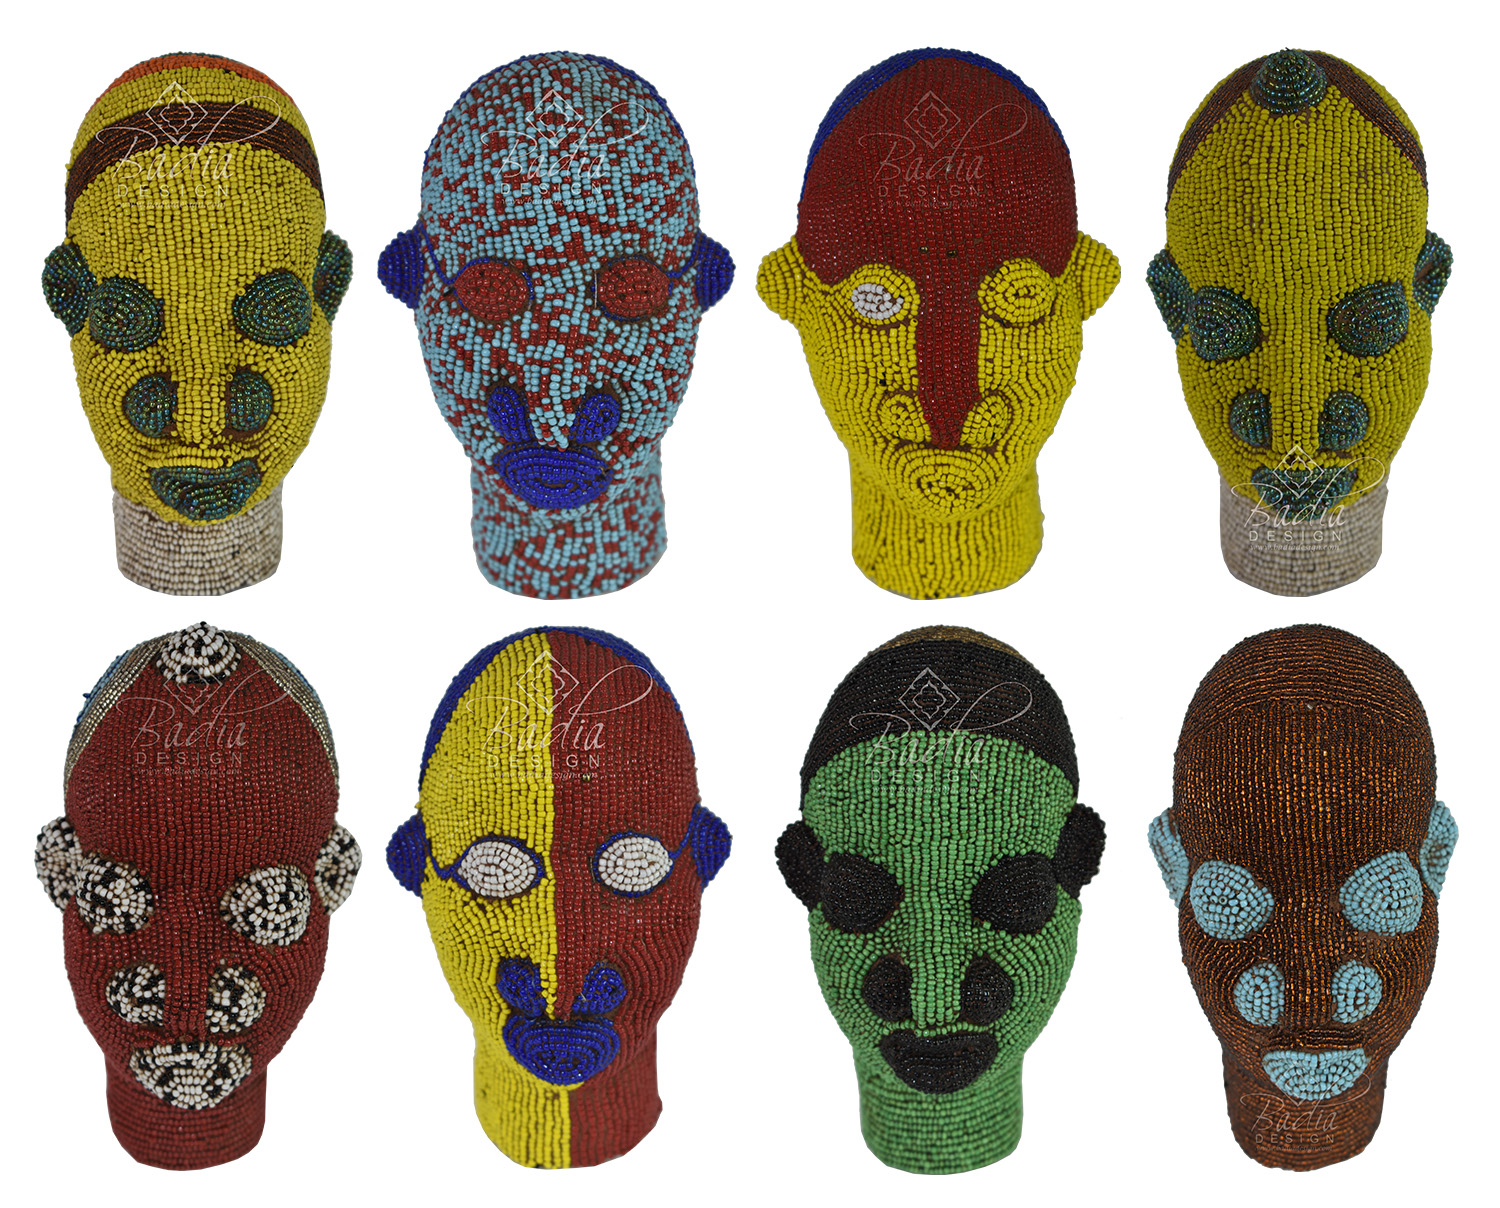 the-best-holiday-gifts-african-beaded-heads-hd242.jpg